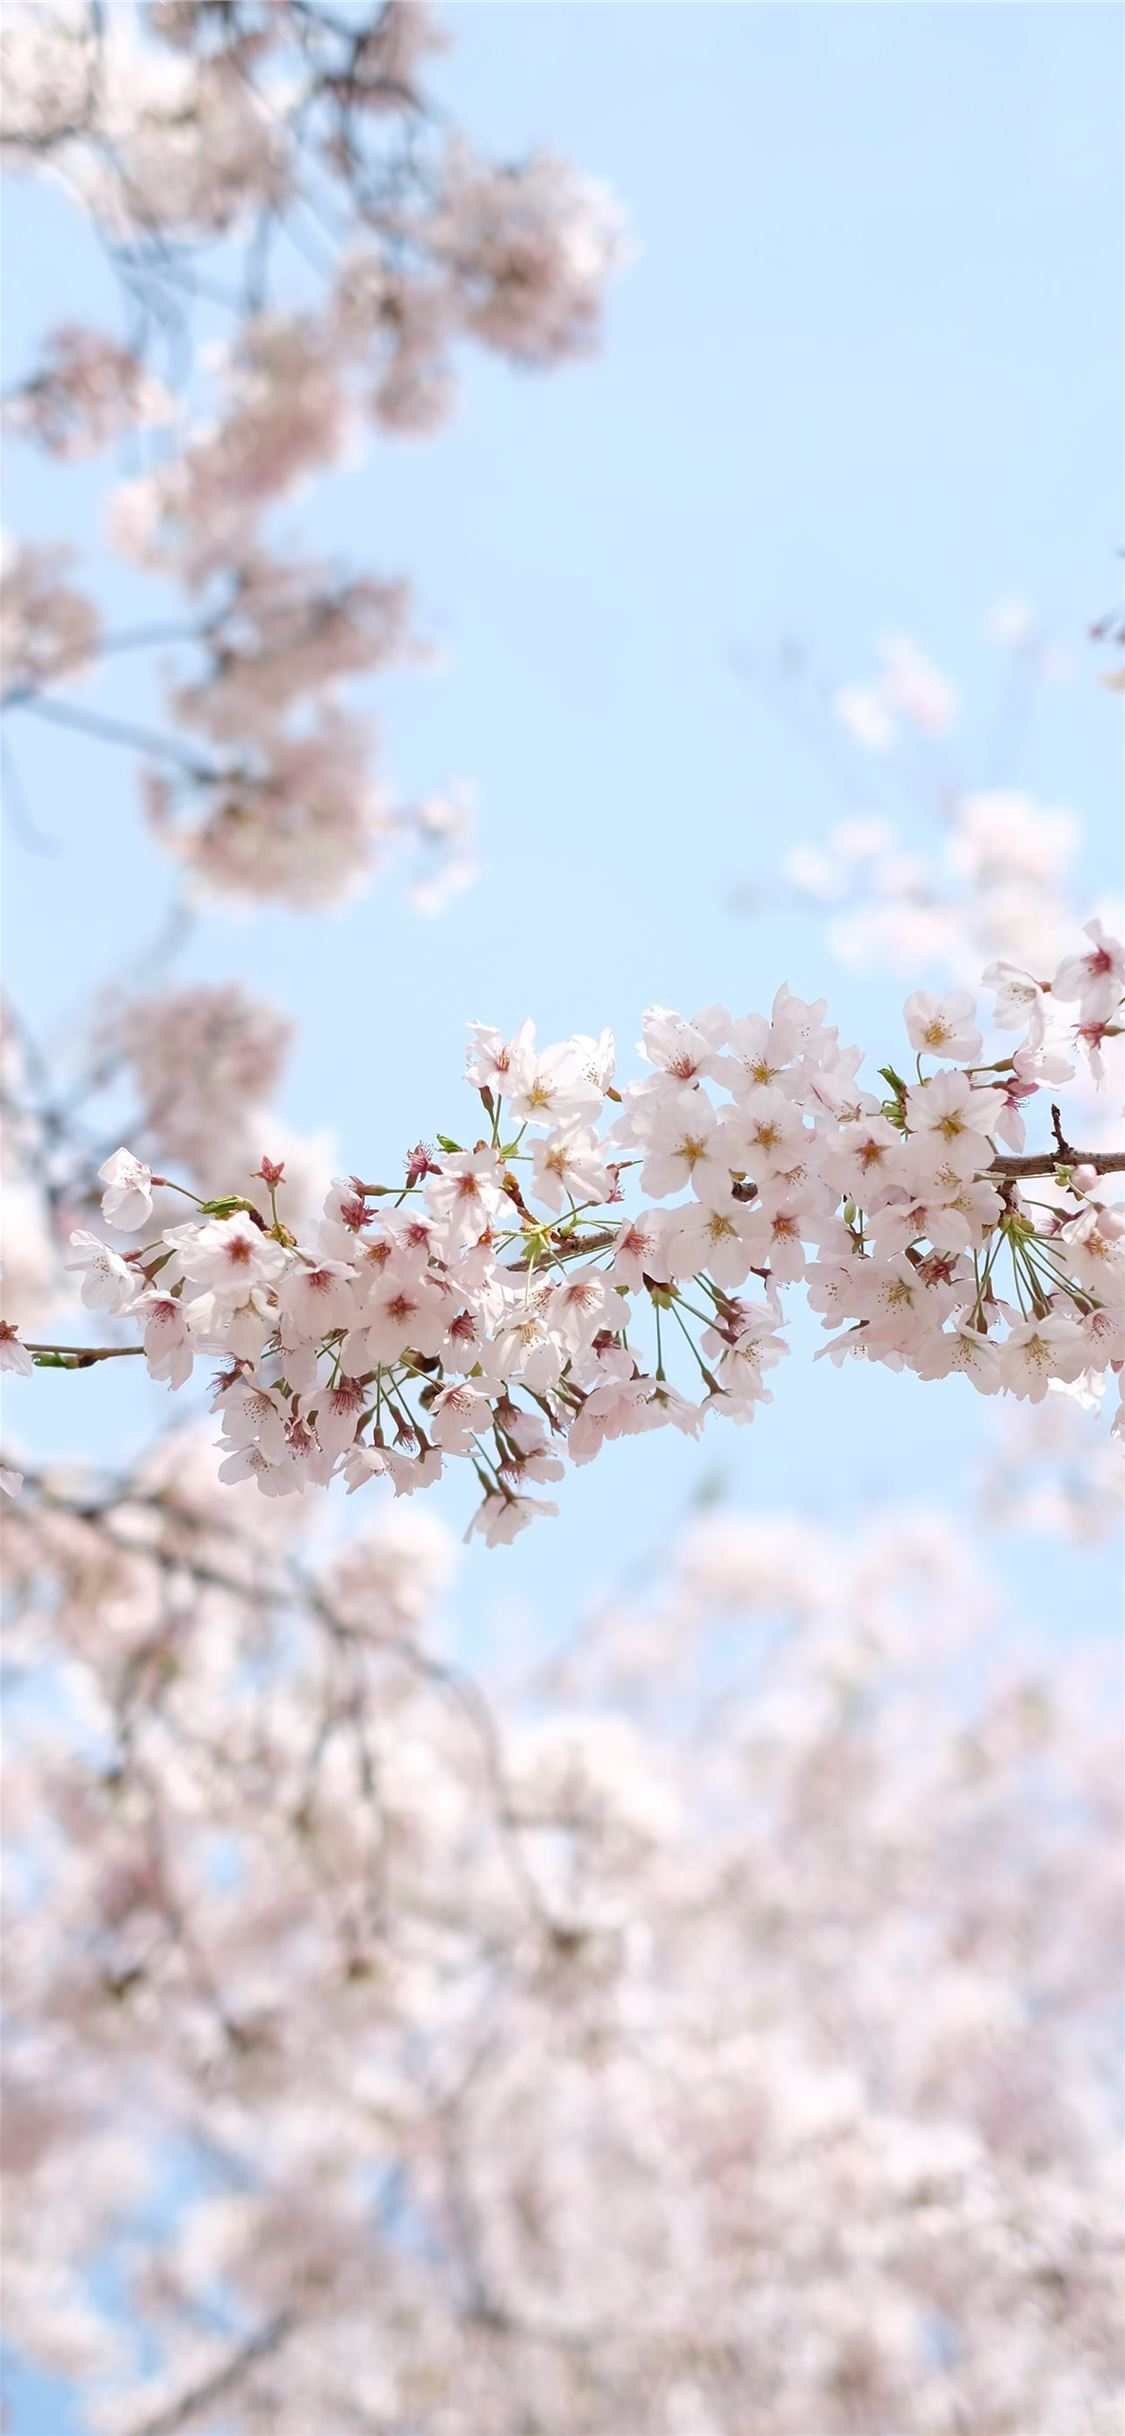 white cherry blossom under clear blue sky during d... iPhone X wallpaper